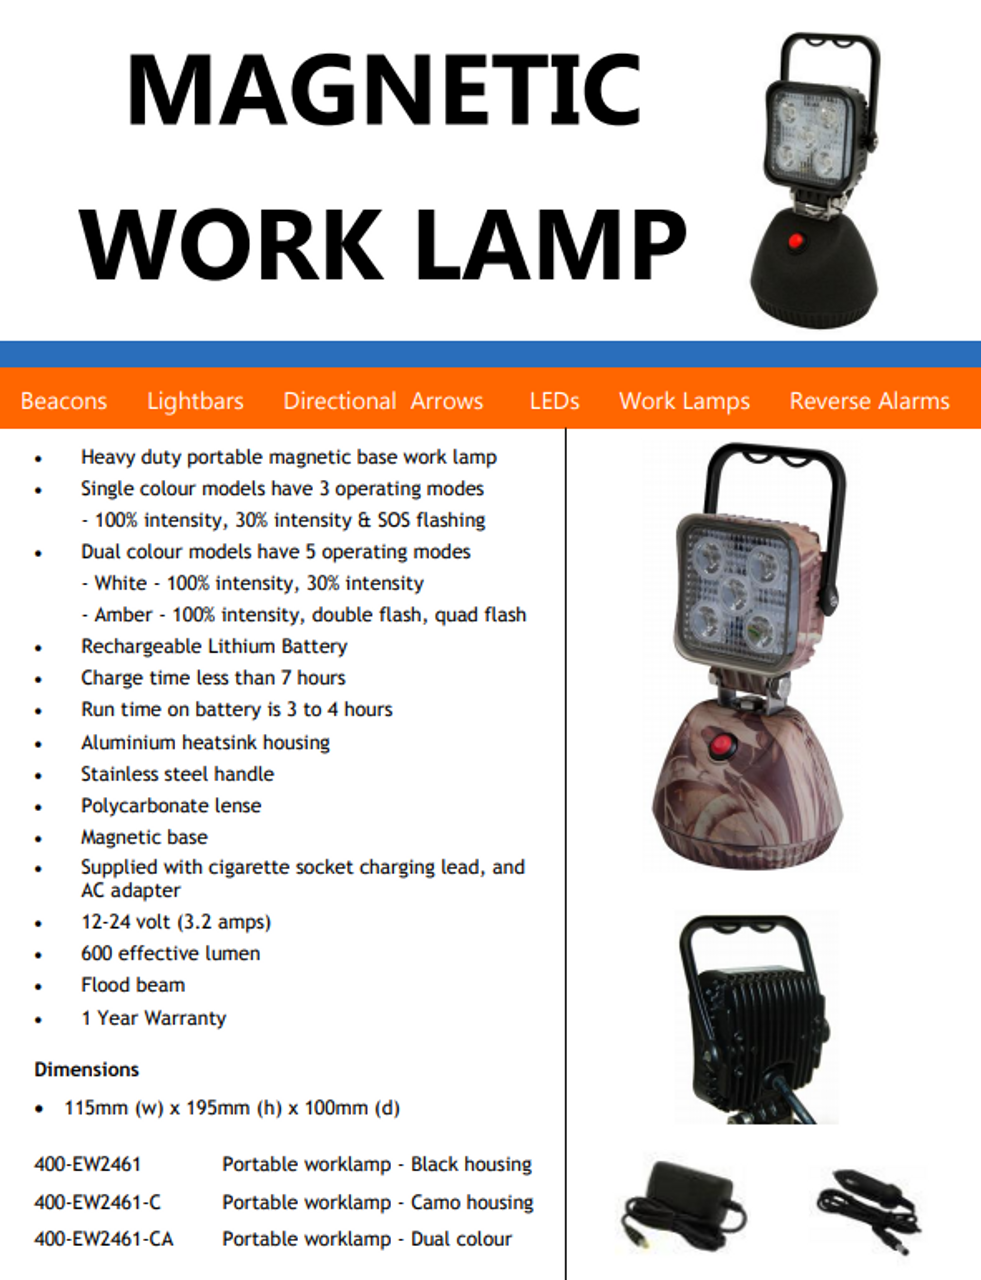 Portable Flood Light, Battery Operated, Magnetic Mount, Rechargeable, LED Work Light, 15 watt. EW2461-CA-AU. Complete Package. Black Colour Housing. White & Amber Emergency LED's. Great Camping Light